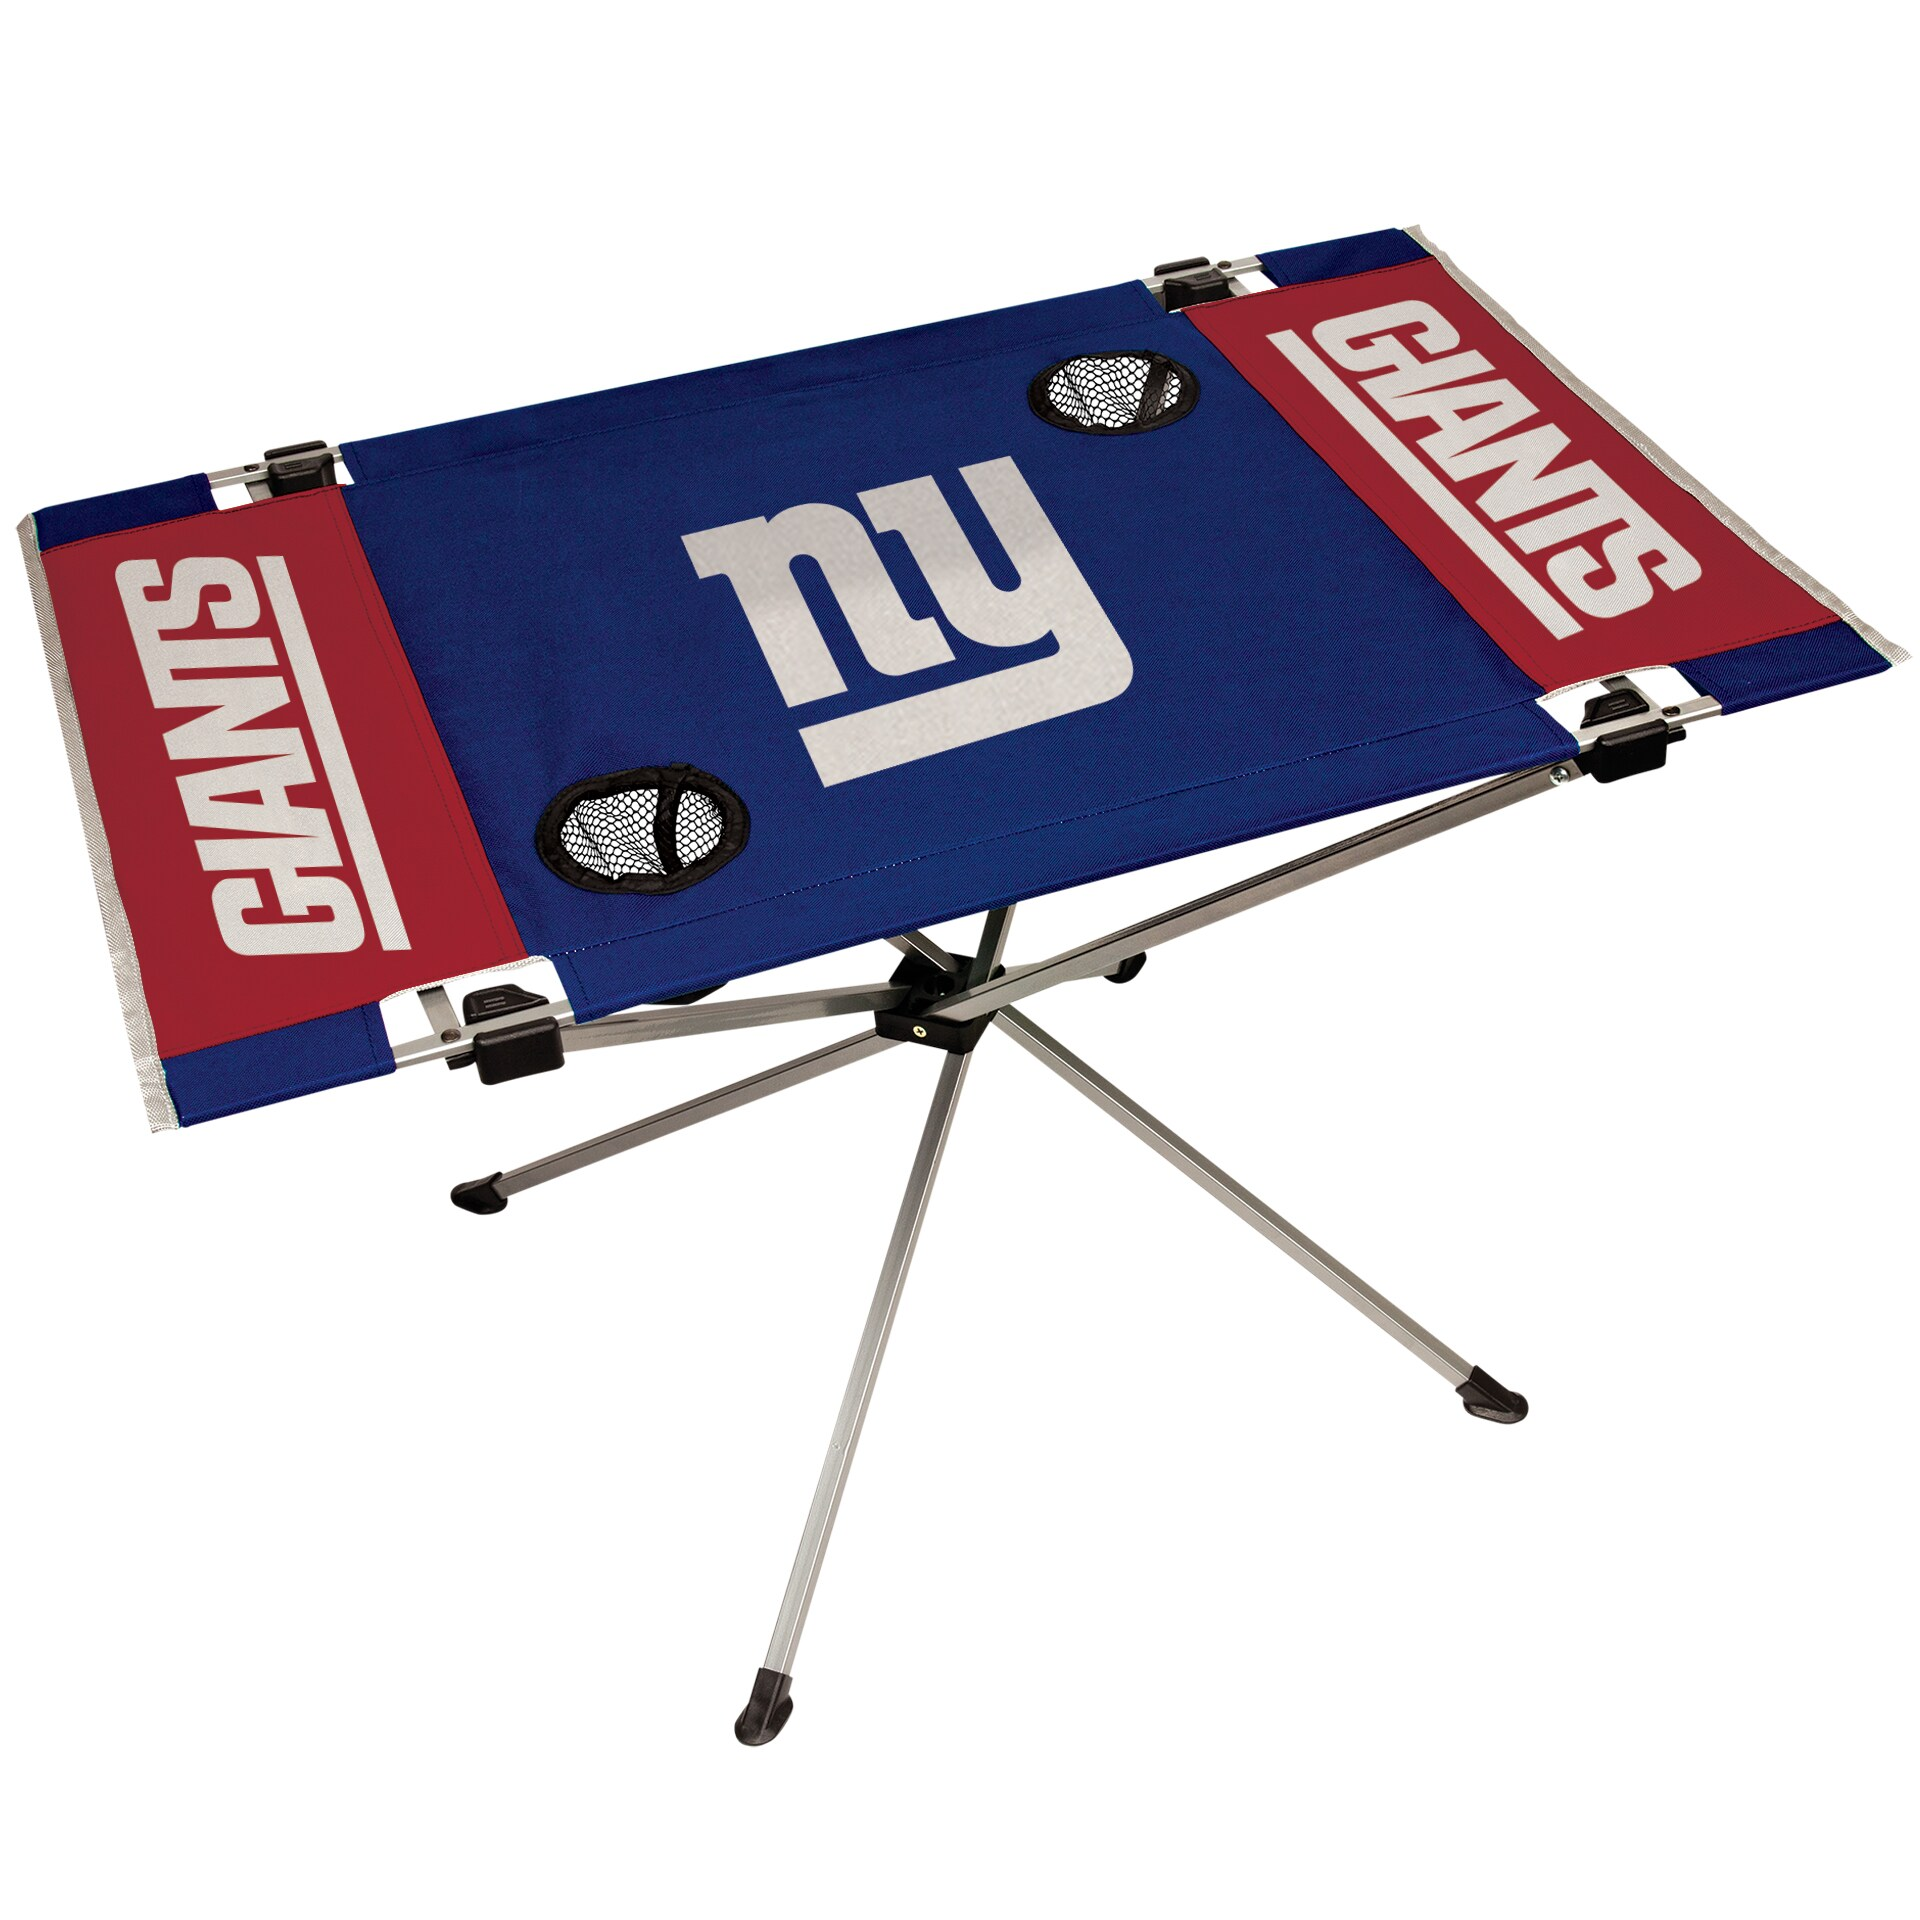 New York Giants End Zone Table